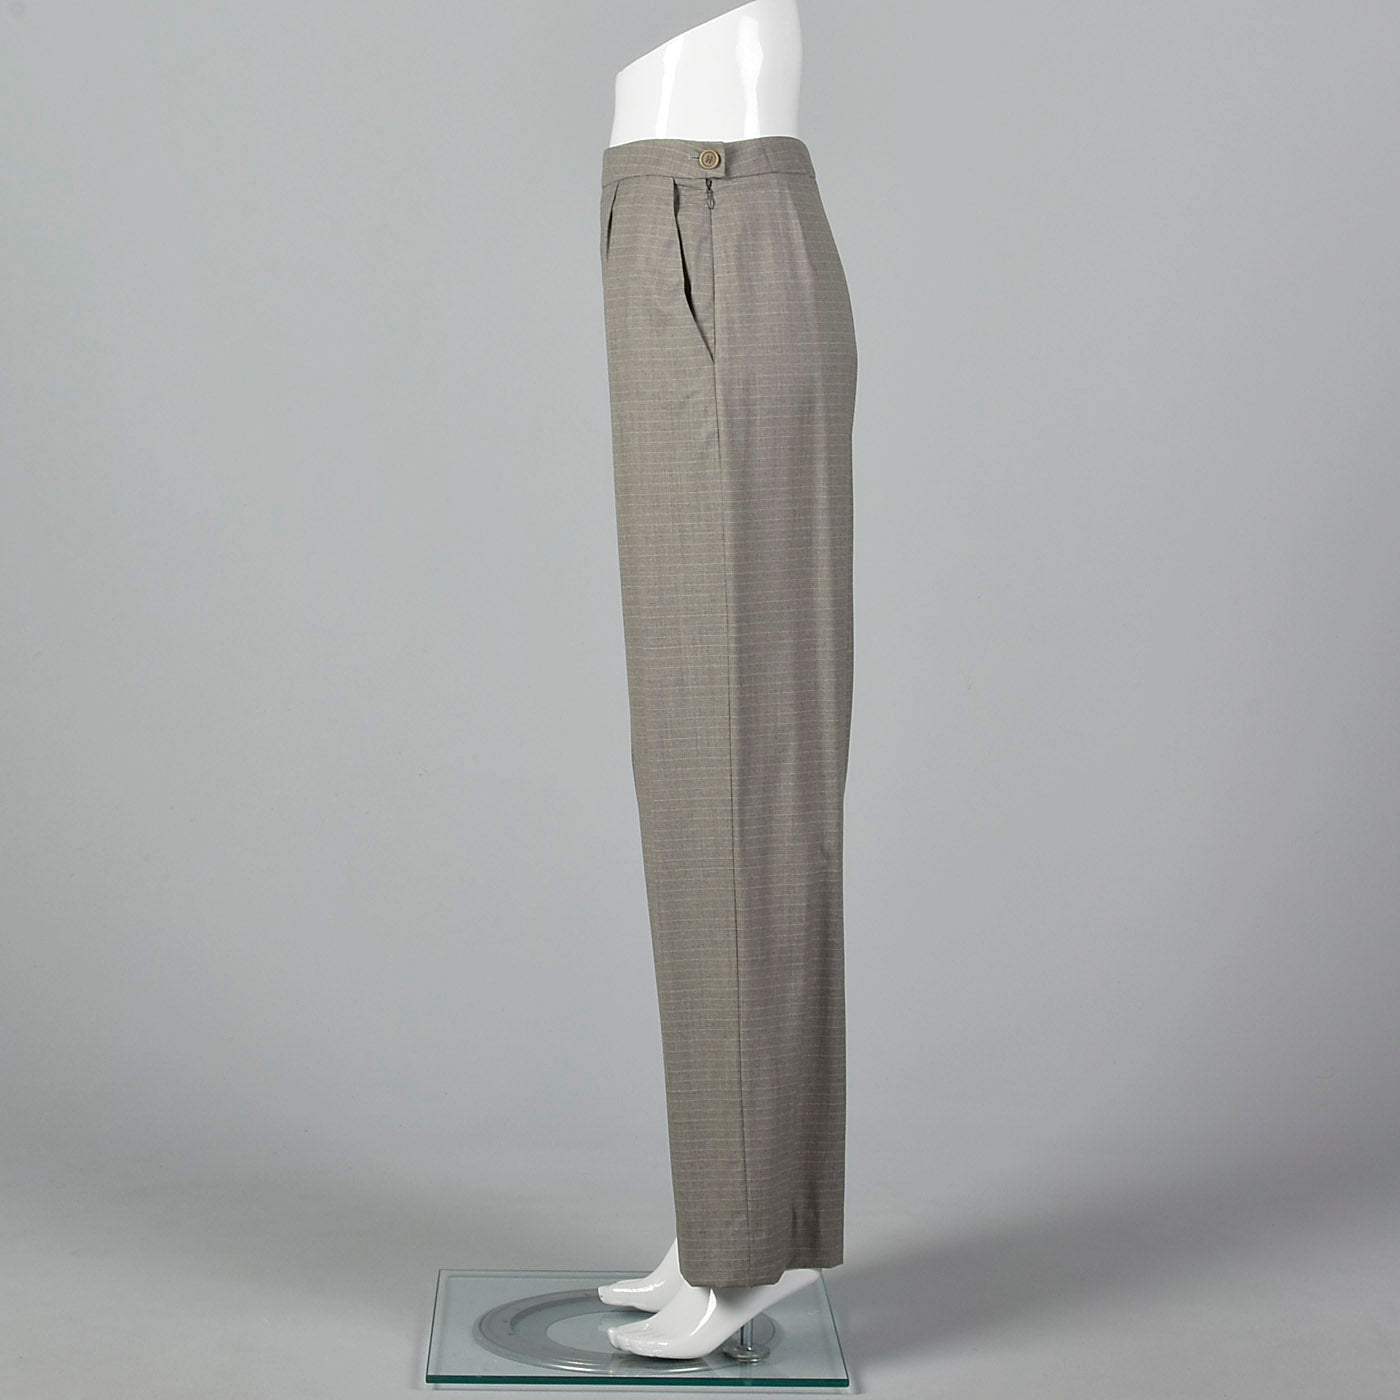 1990s Hermès Wool Pants in Heathered Gray